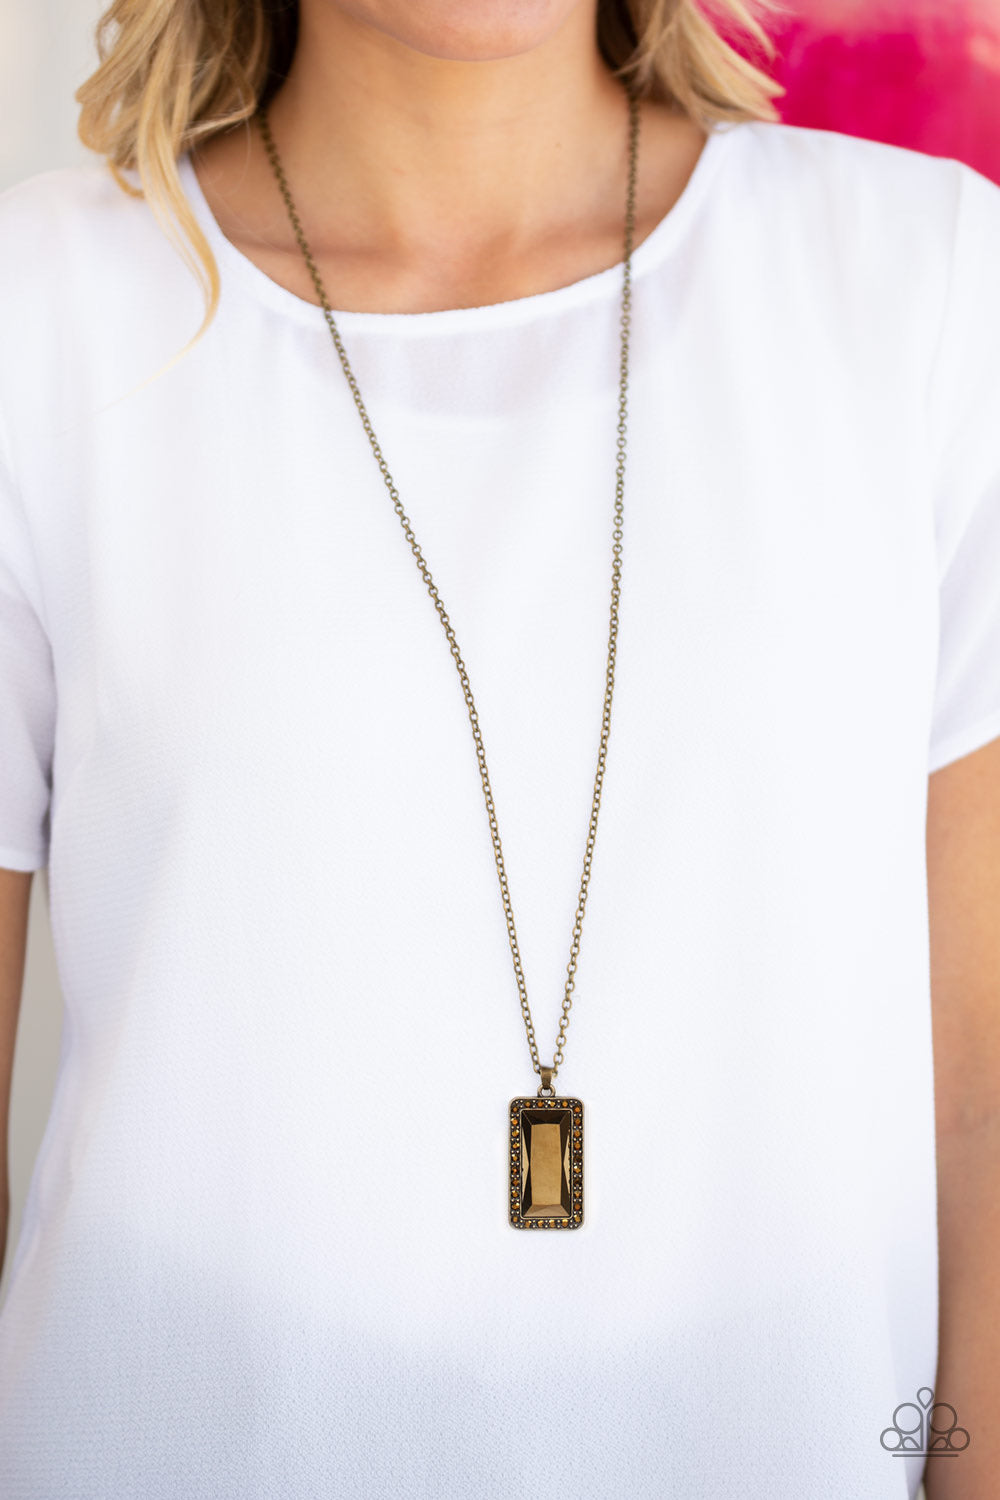 Paparazzi Jewelry Necklace Bada BLING Bada Boom - Brass